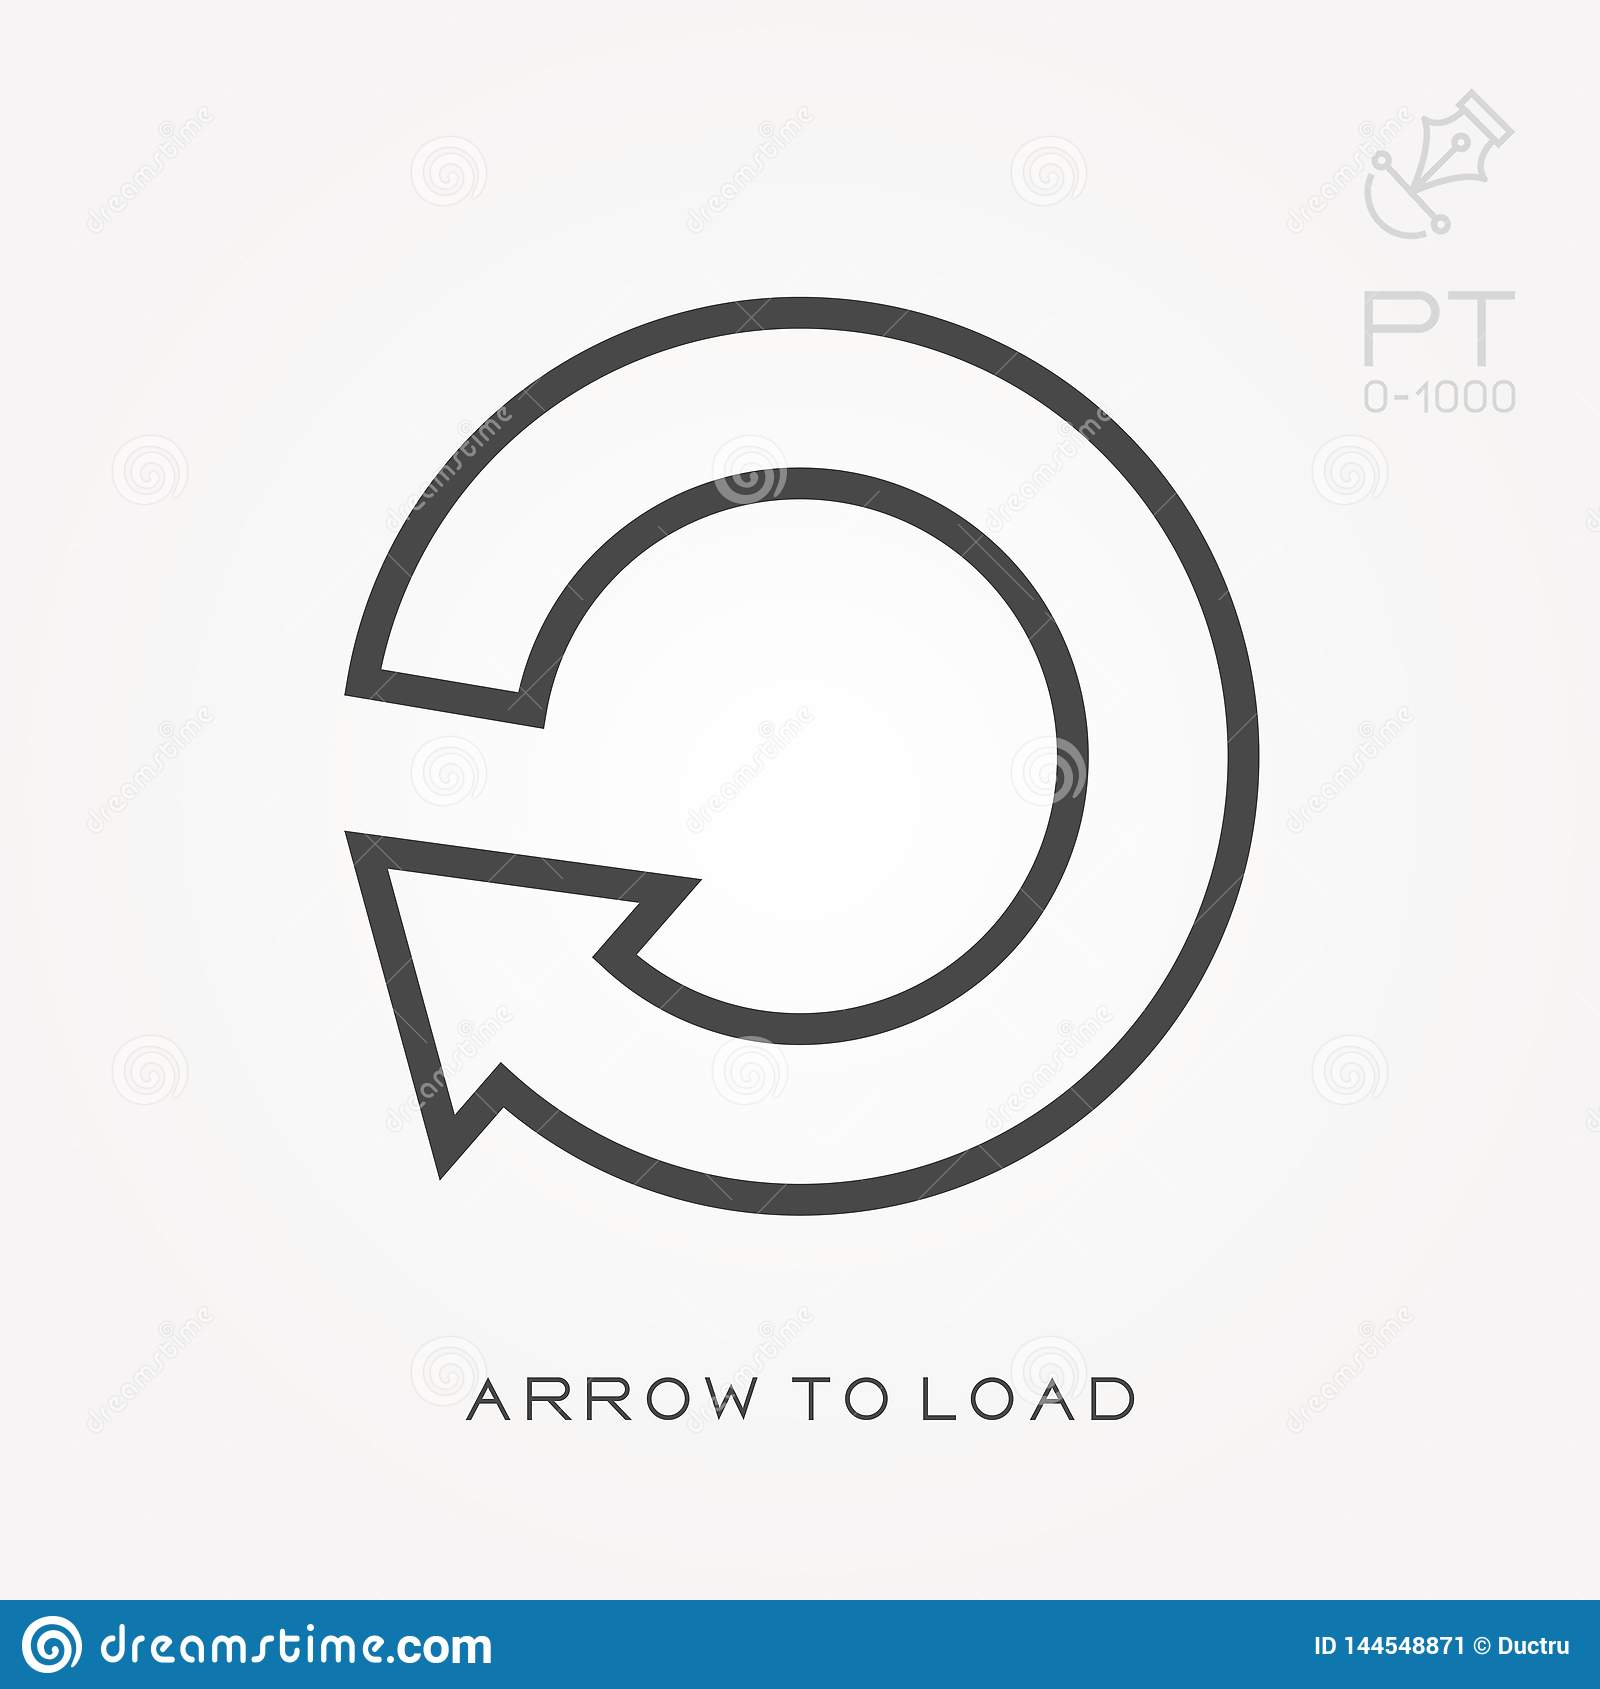 Line icon arrow to load